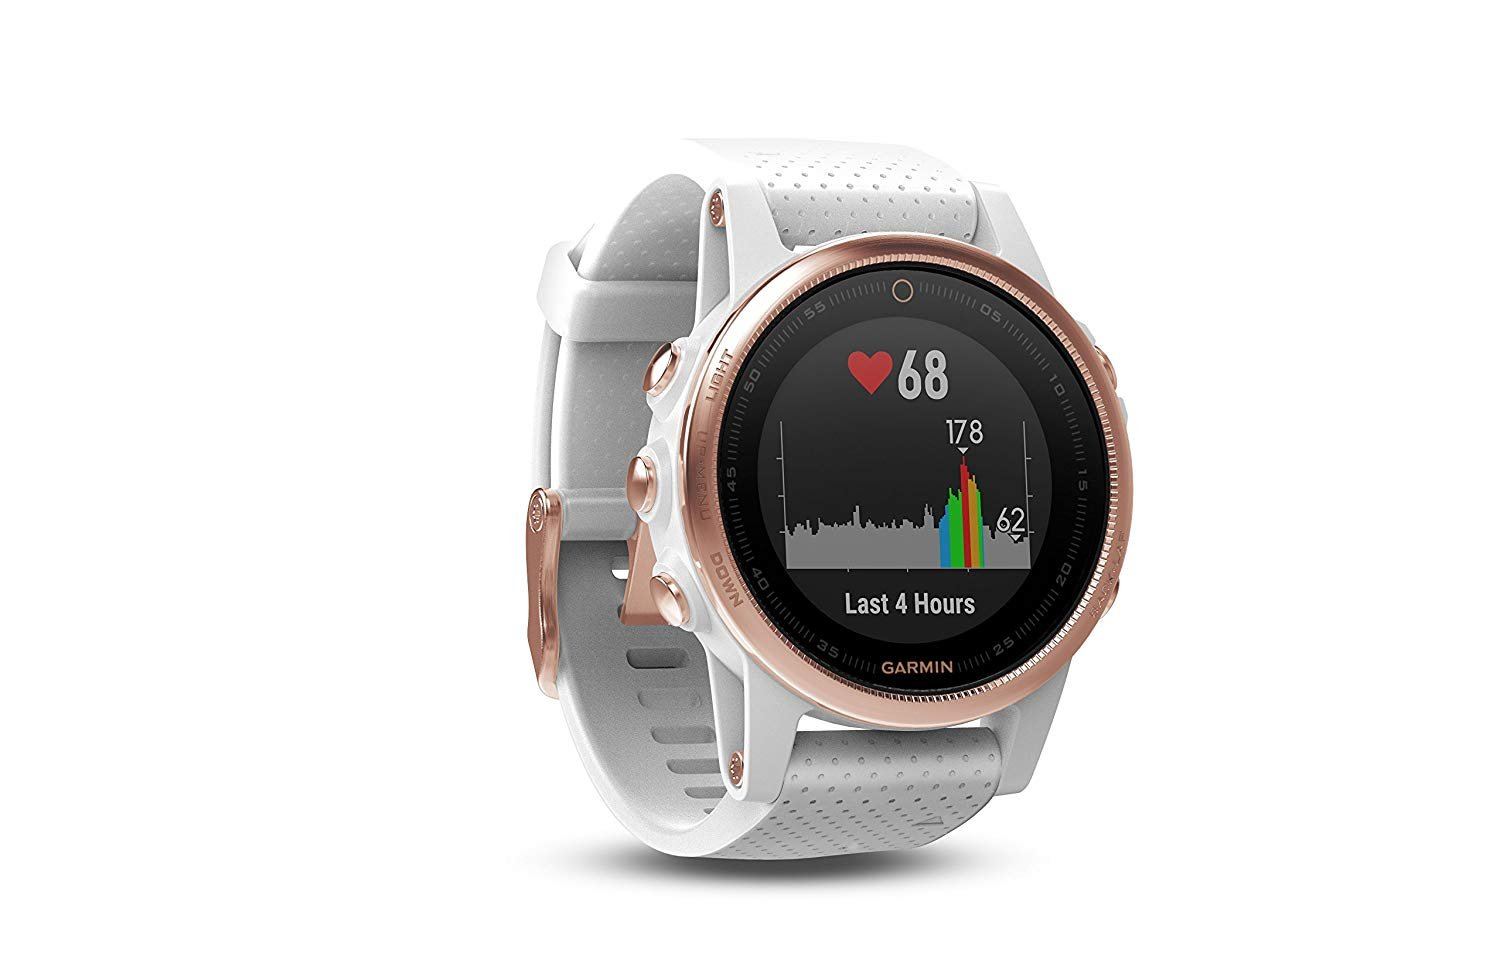 Garmin Fenix 5S - Sapphire, (Rose Gold/White Band) Bundle with PowerBank + USB Car Charger + USB Wall Charger (4 Items) by E Zee Electronics (Image #4)